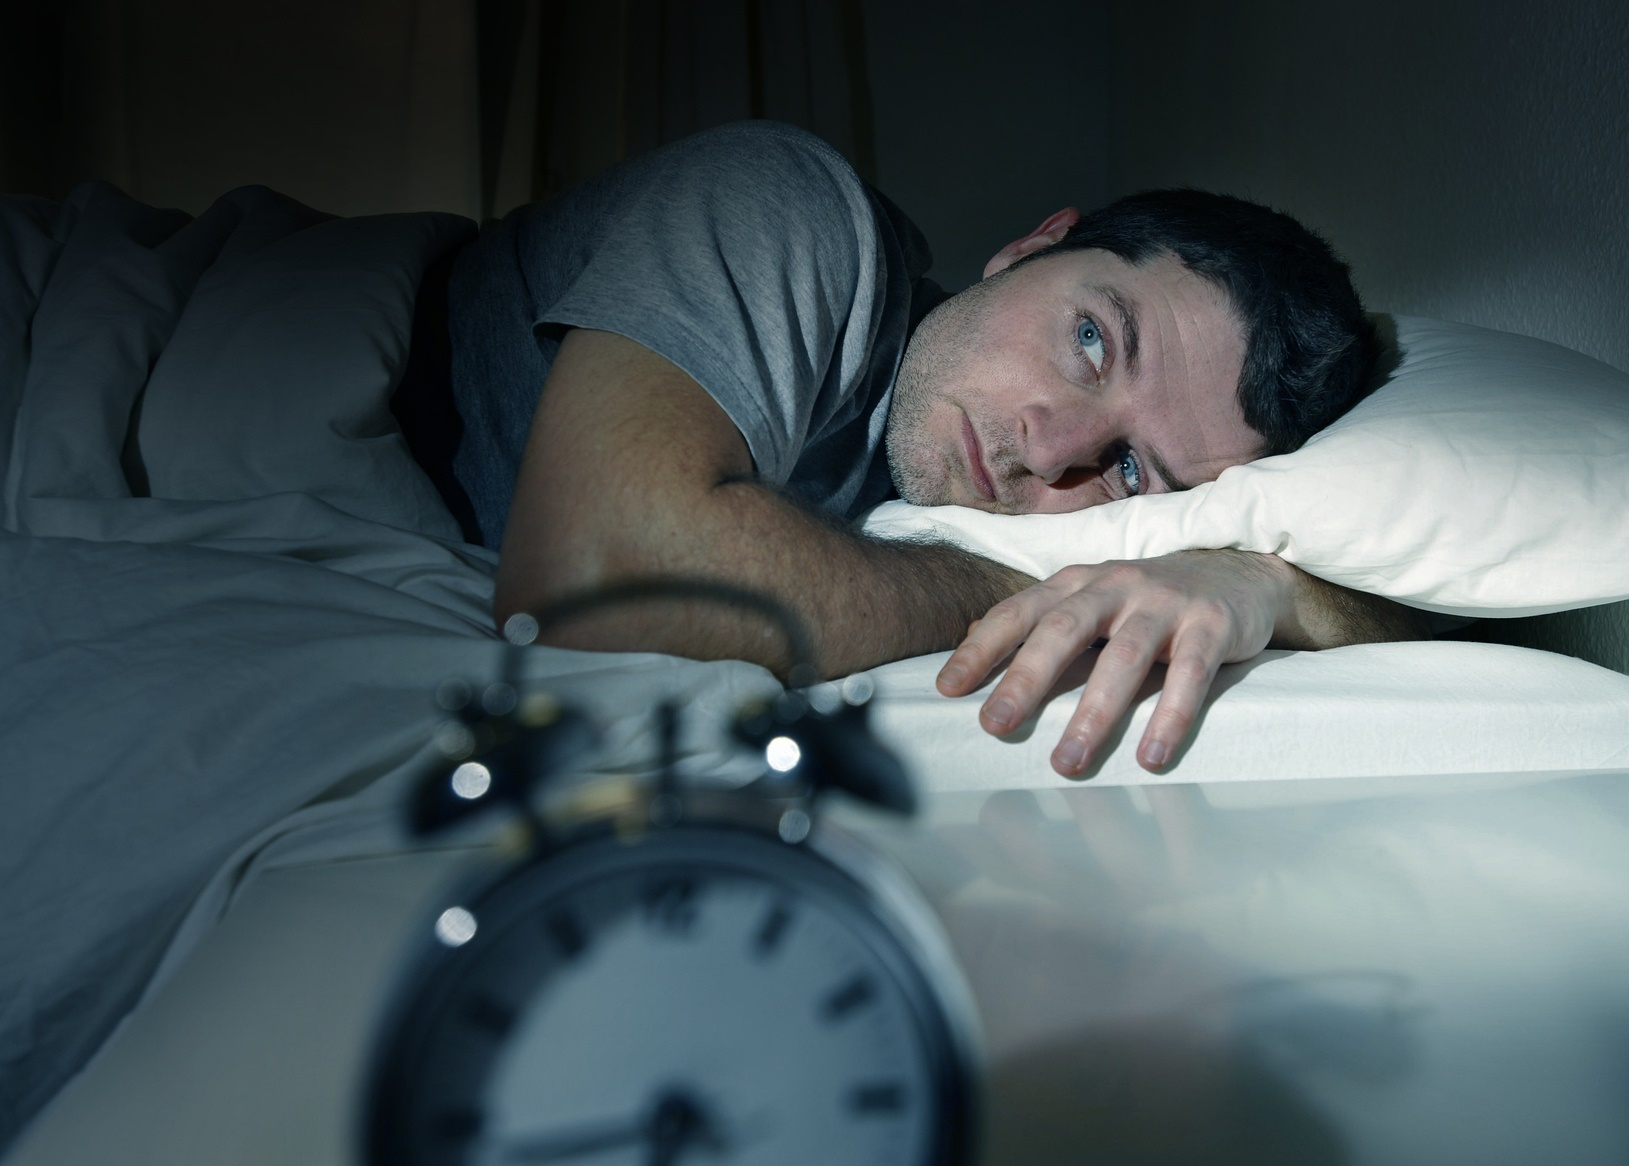 It is reported that about 55 million Americans have insomnia.  It is well known that this causes serious problems with a person's performance of next day activities. Now there may be help.